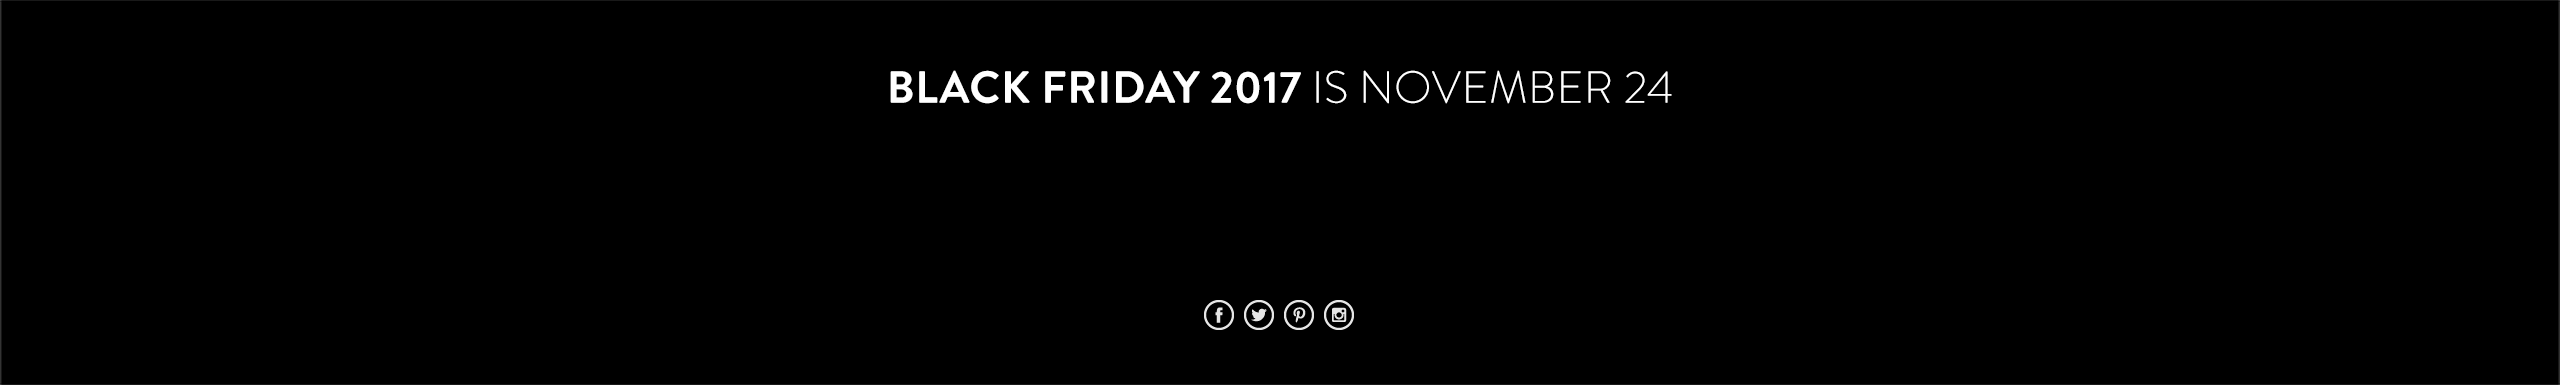 Black Friday 2017 is November 24.